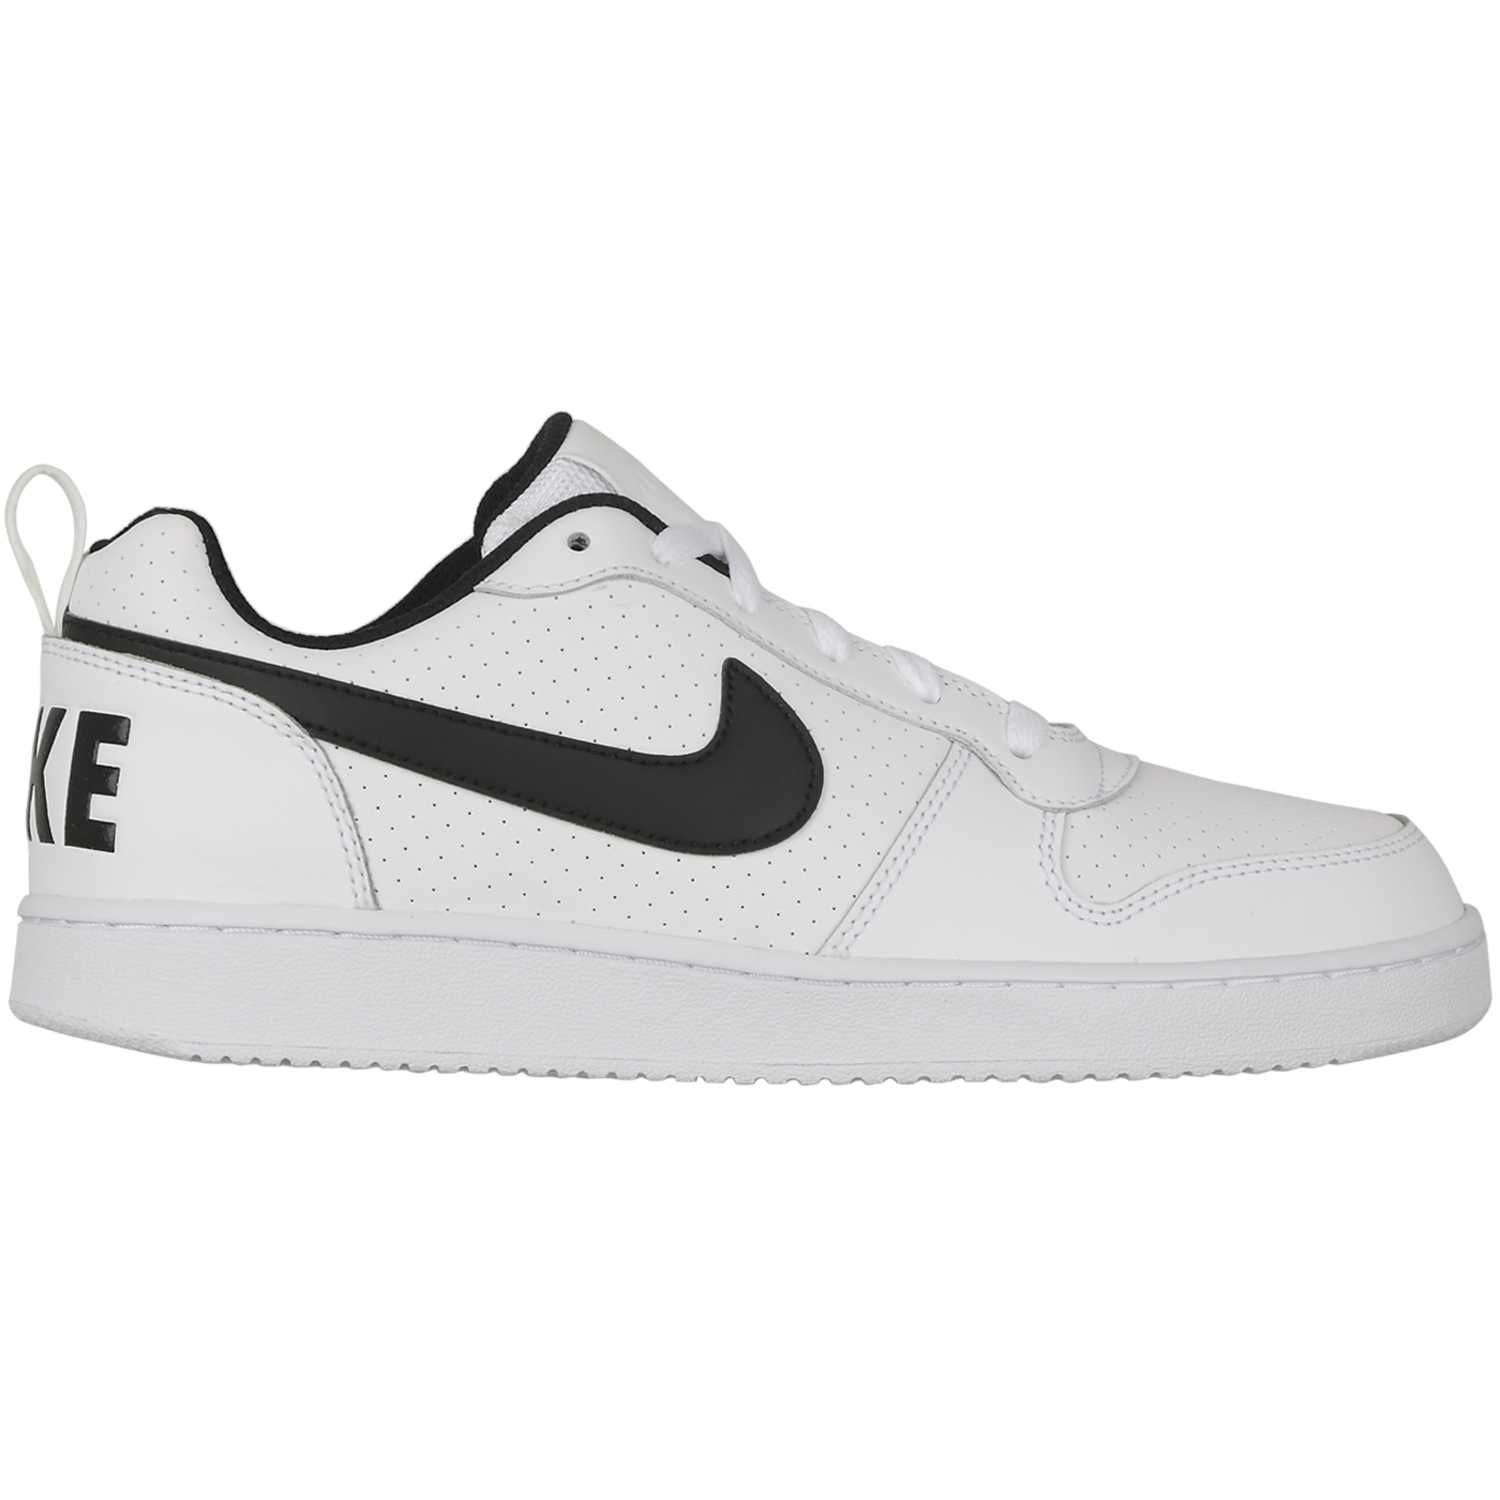 52aa37a9e02 Zapatilla de Hombre Nike Blanco   Negro recreation low Nike Men